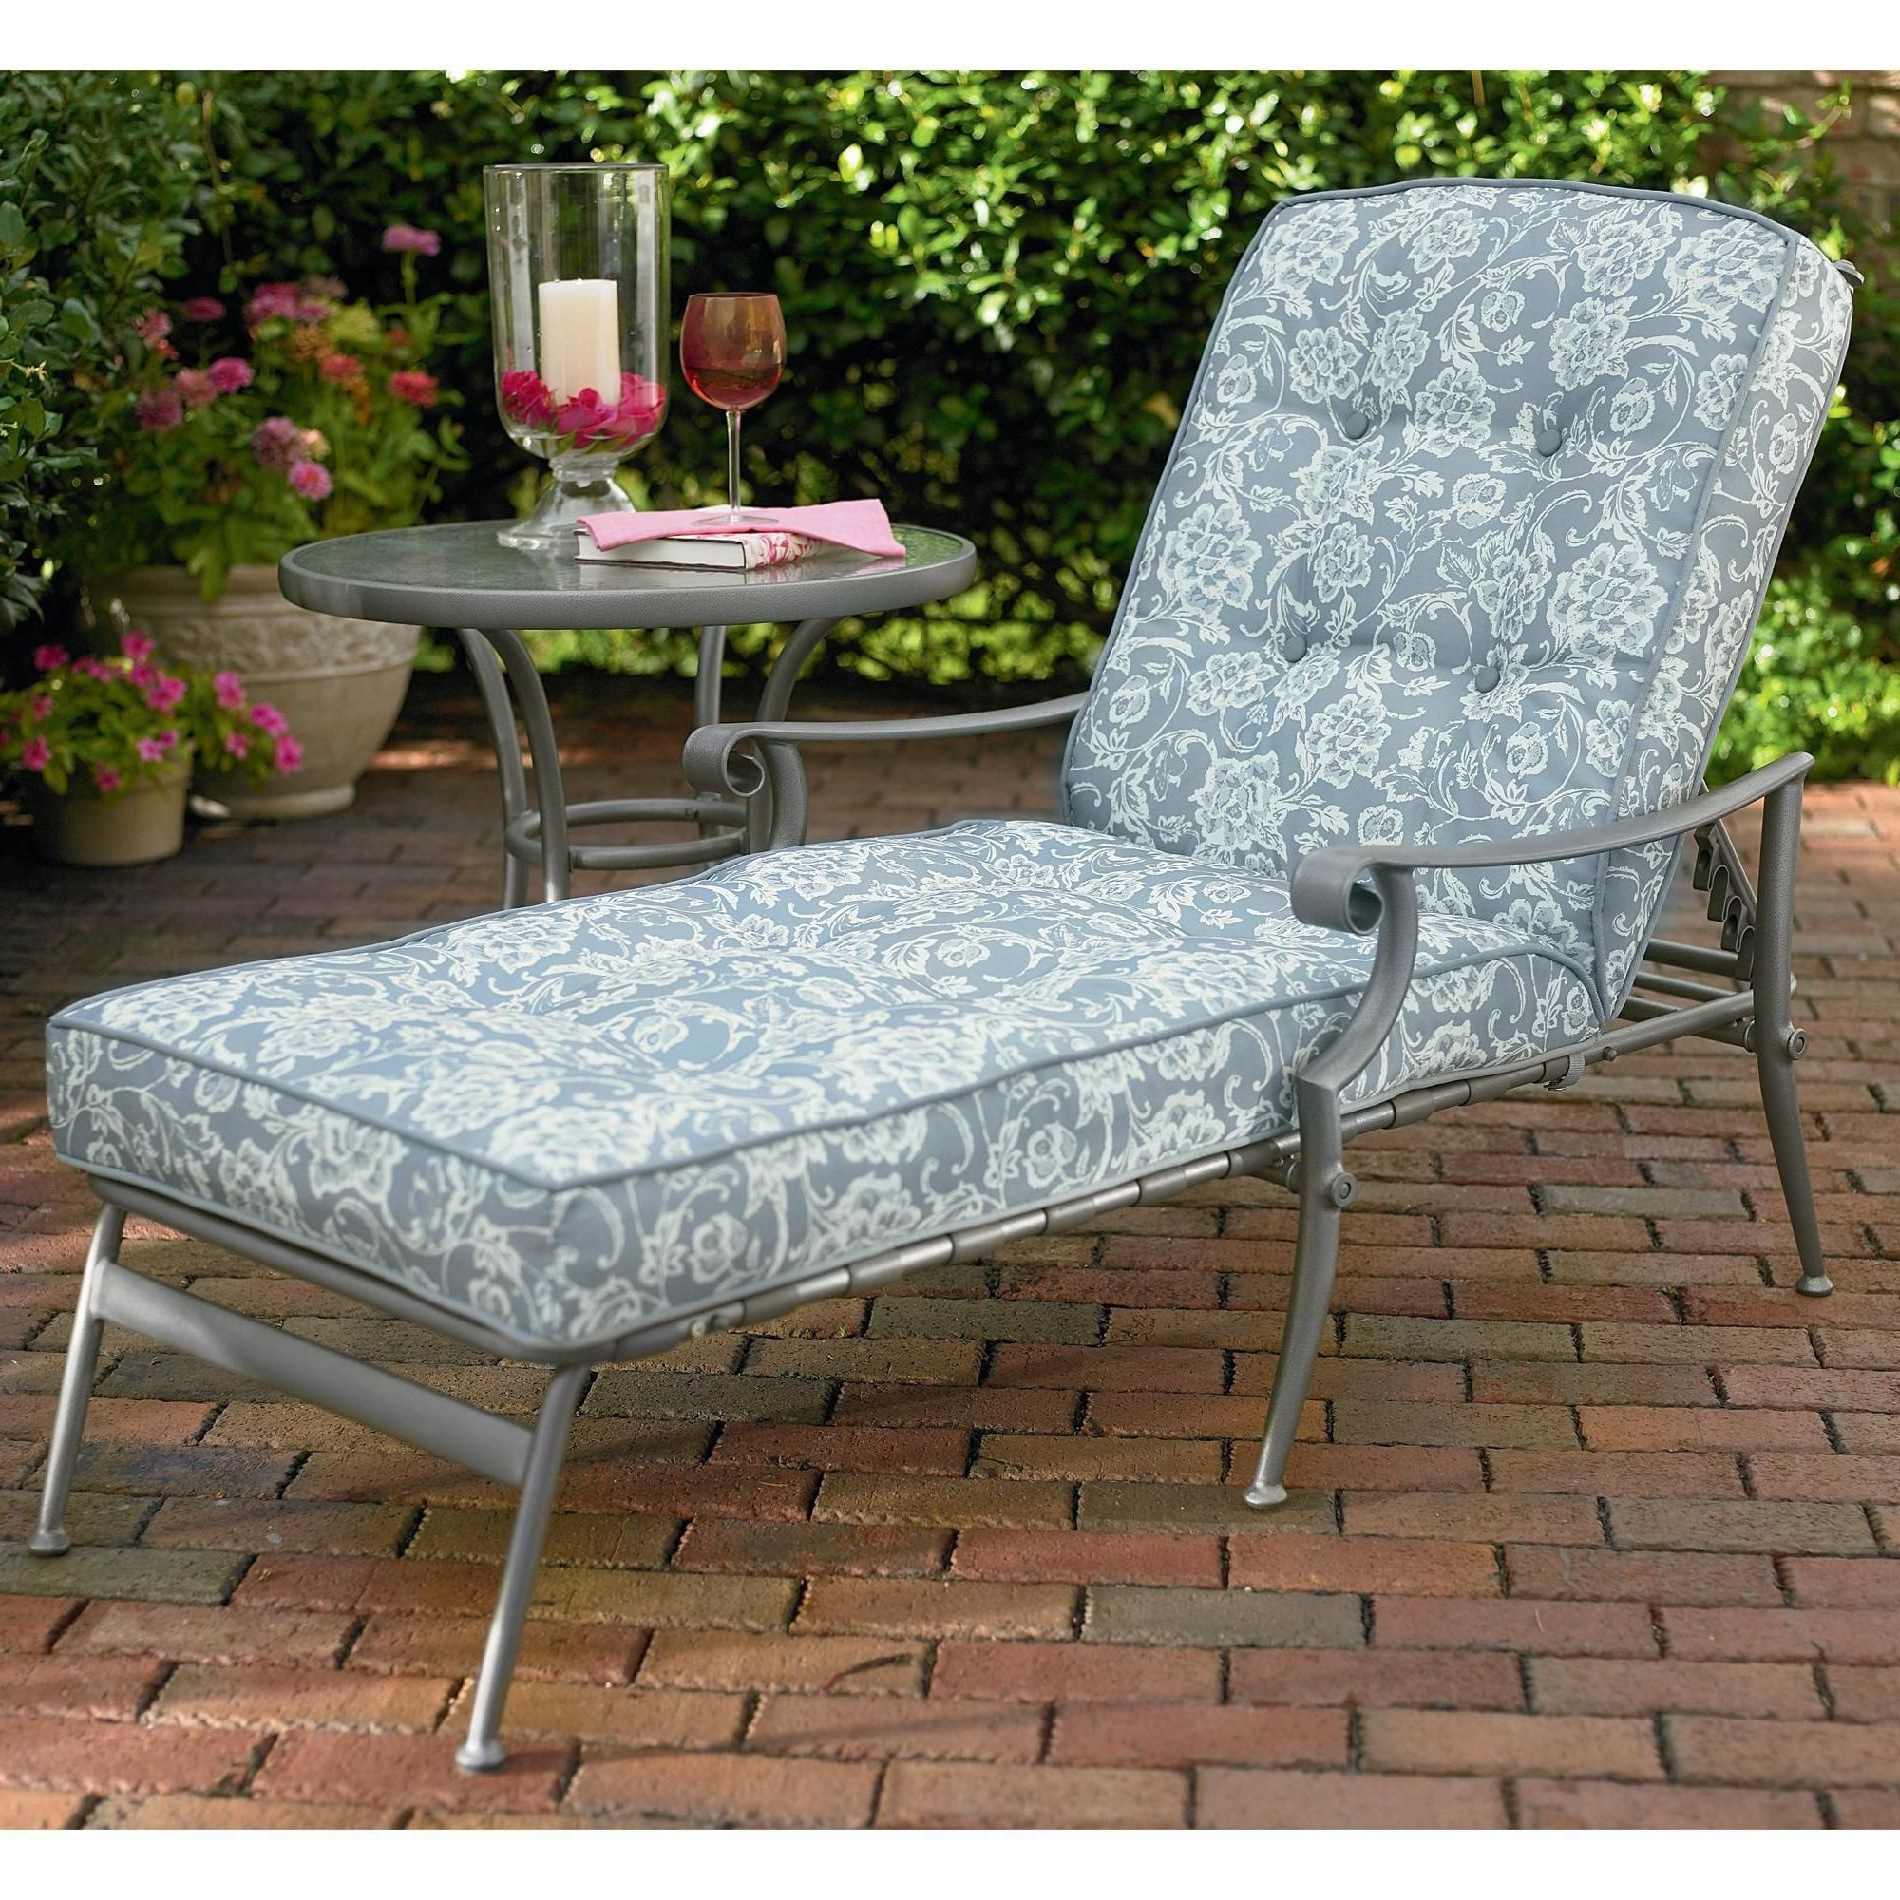 Best And Newest Outdoor Cushions For Chaise Lounge Chairs Inside Convertible Chair : Lounge Chairs Aluminum Chaise Lounge Chairs (View 14 of 15)